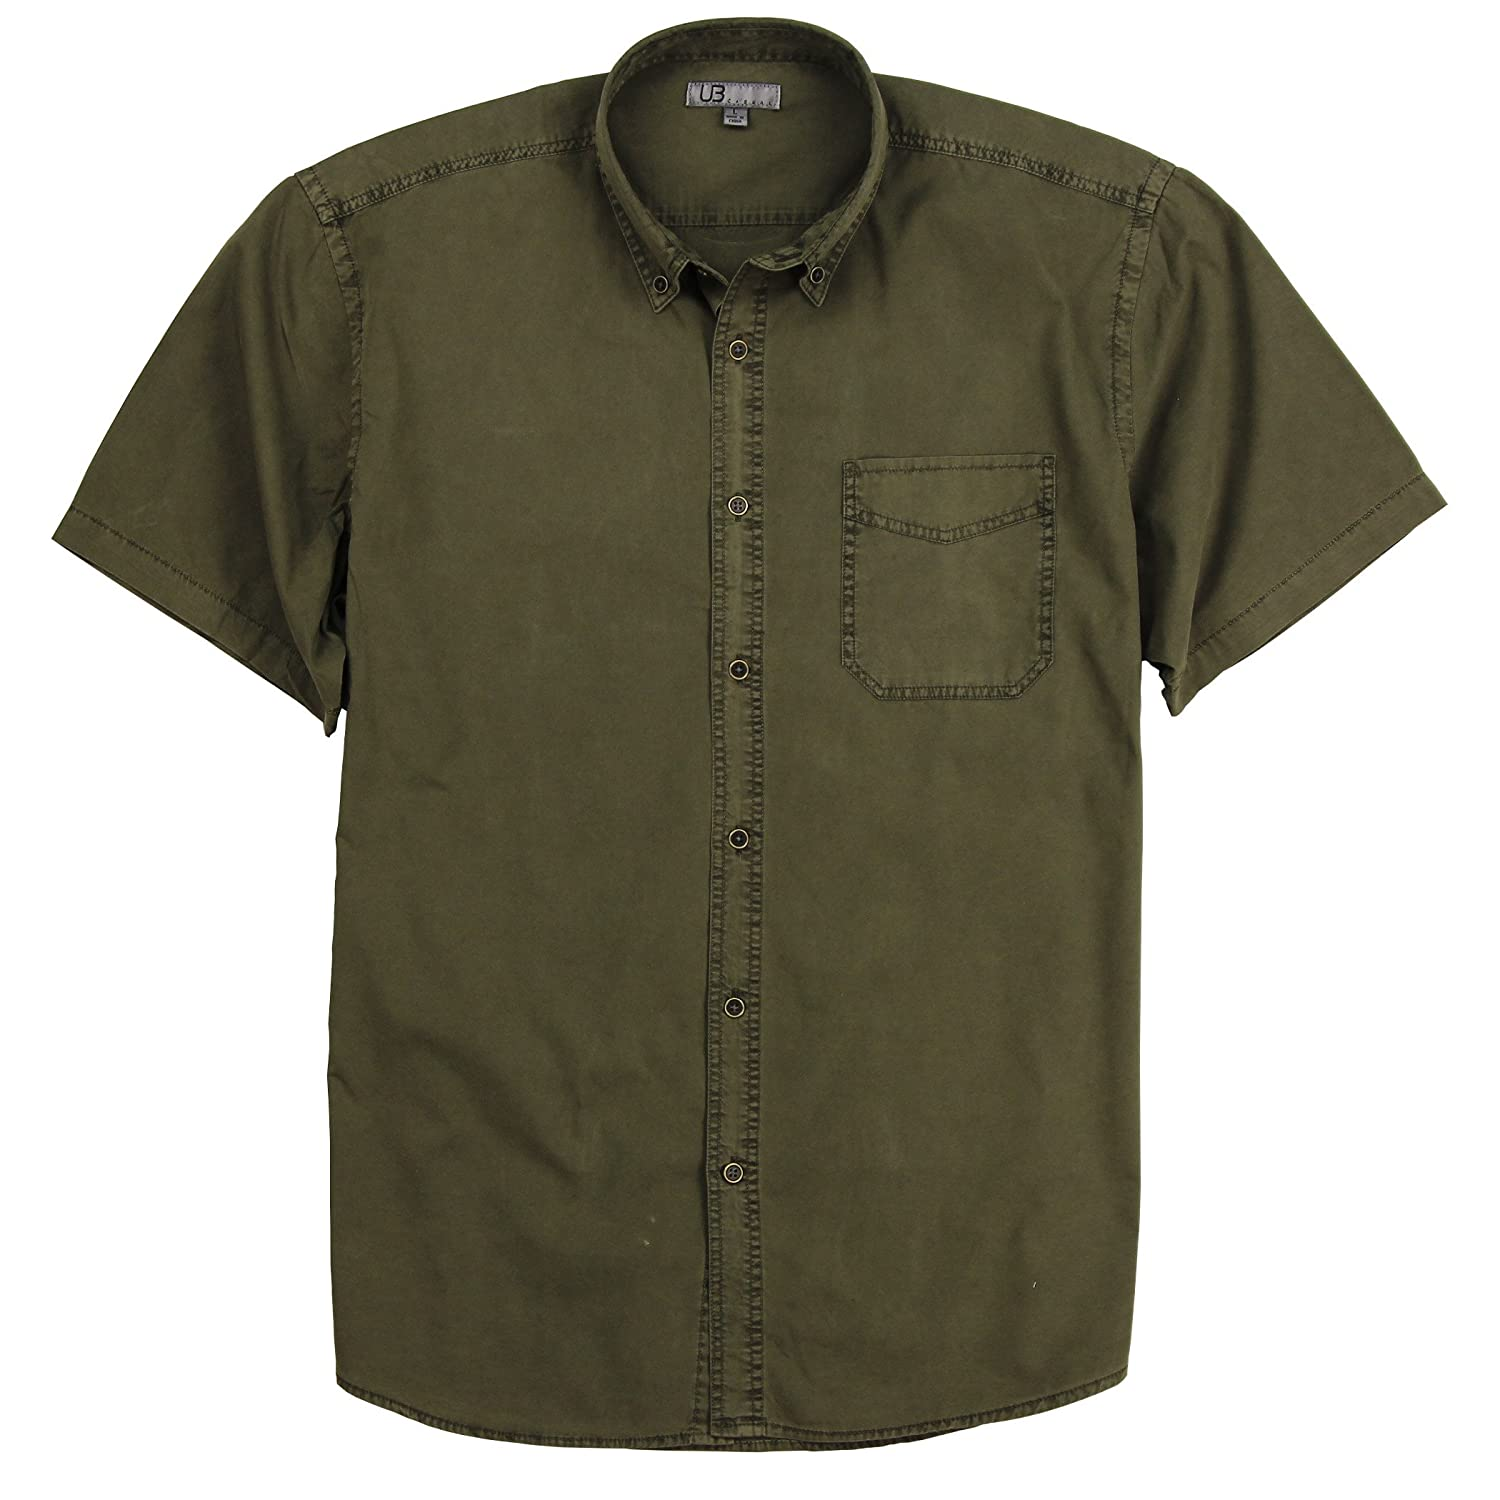 Men's Garment Dyed 100% Cotton Button Down Short Sleeve Shirt